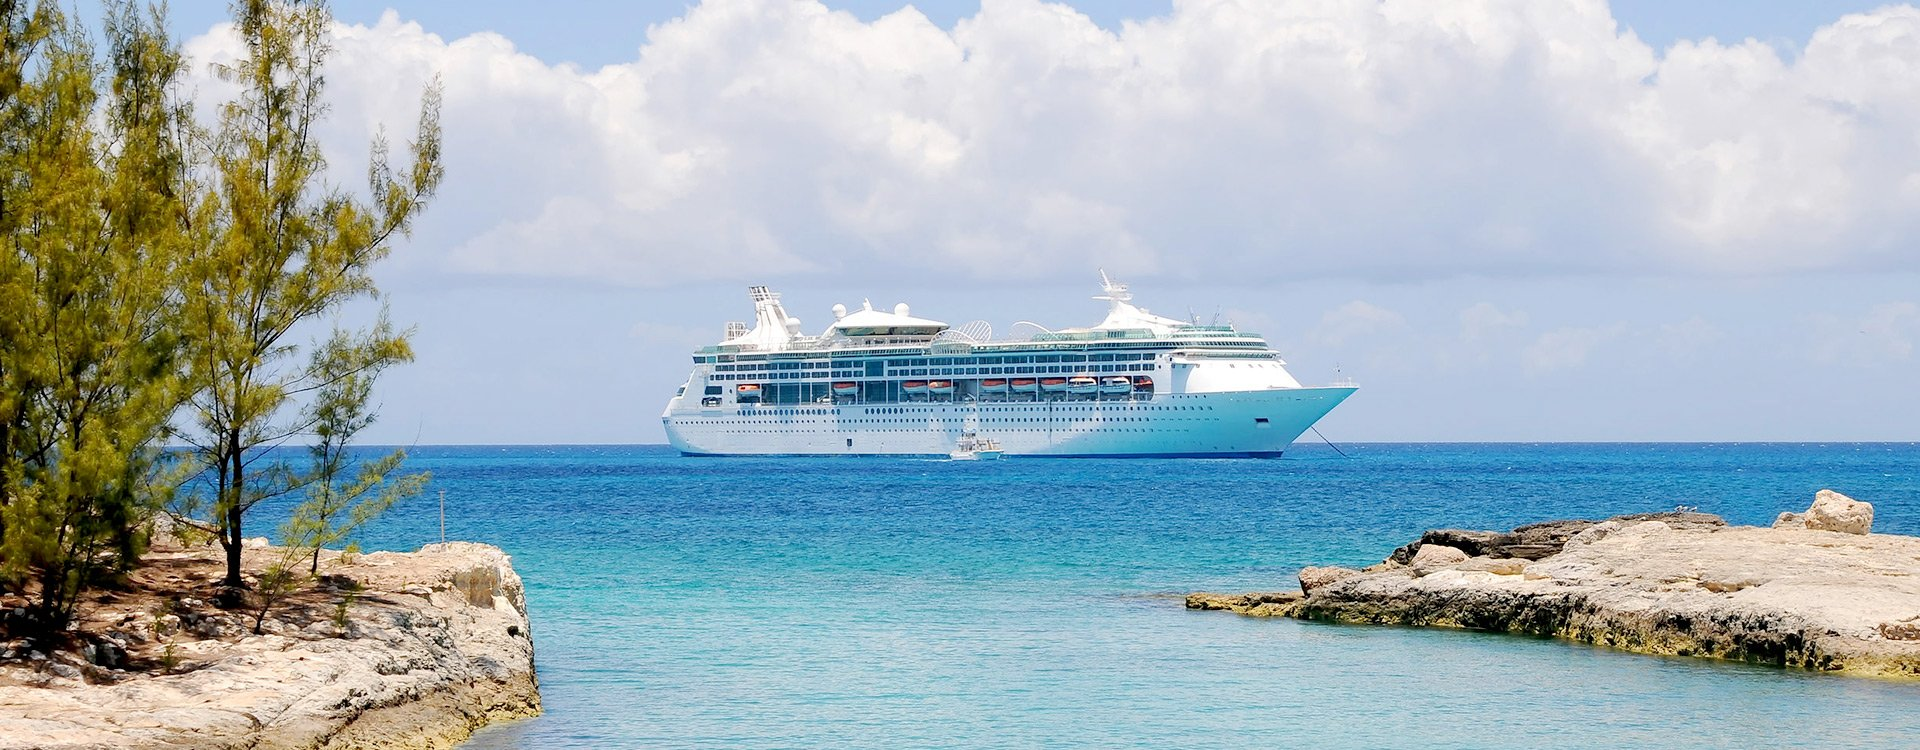 combine your cme with a caribbean cruise of a lifetime